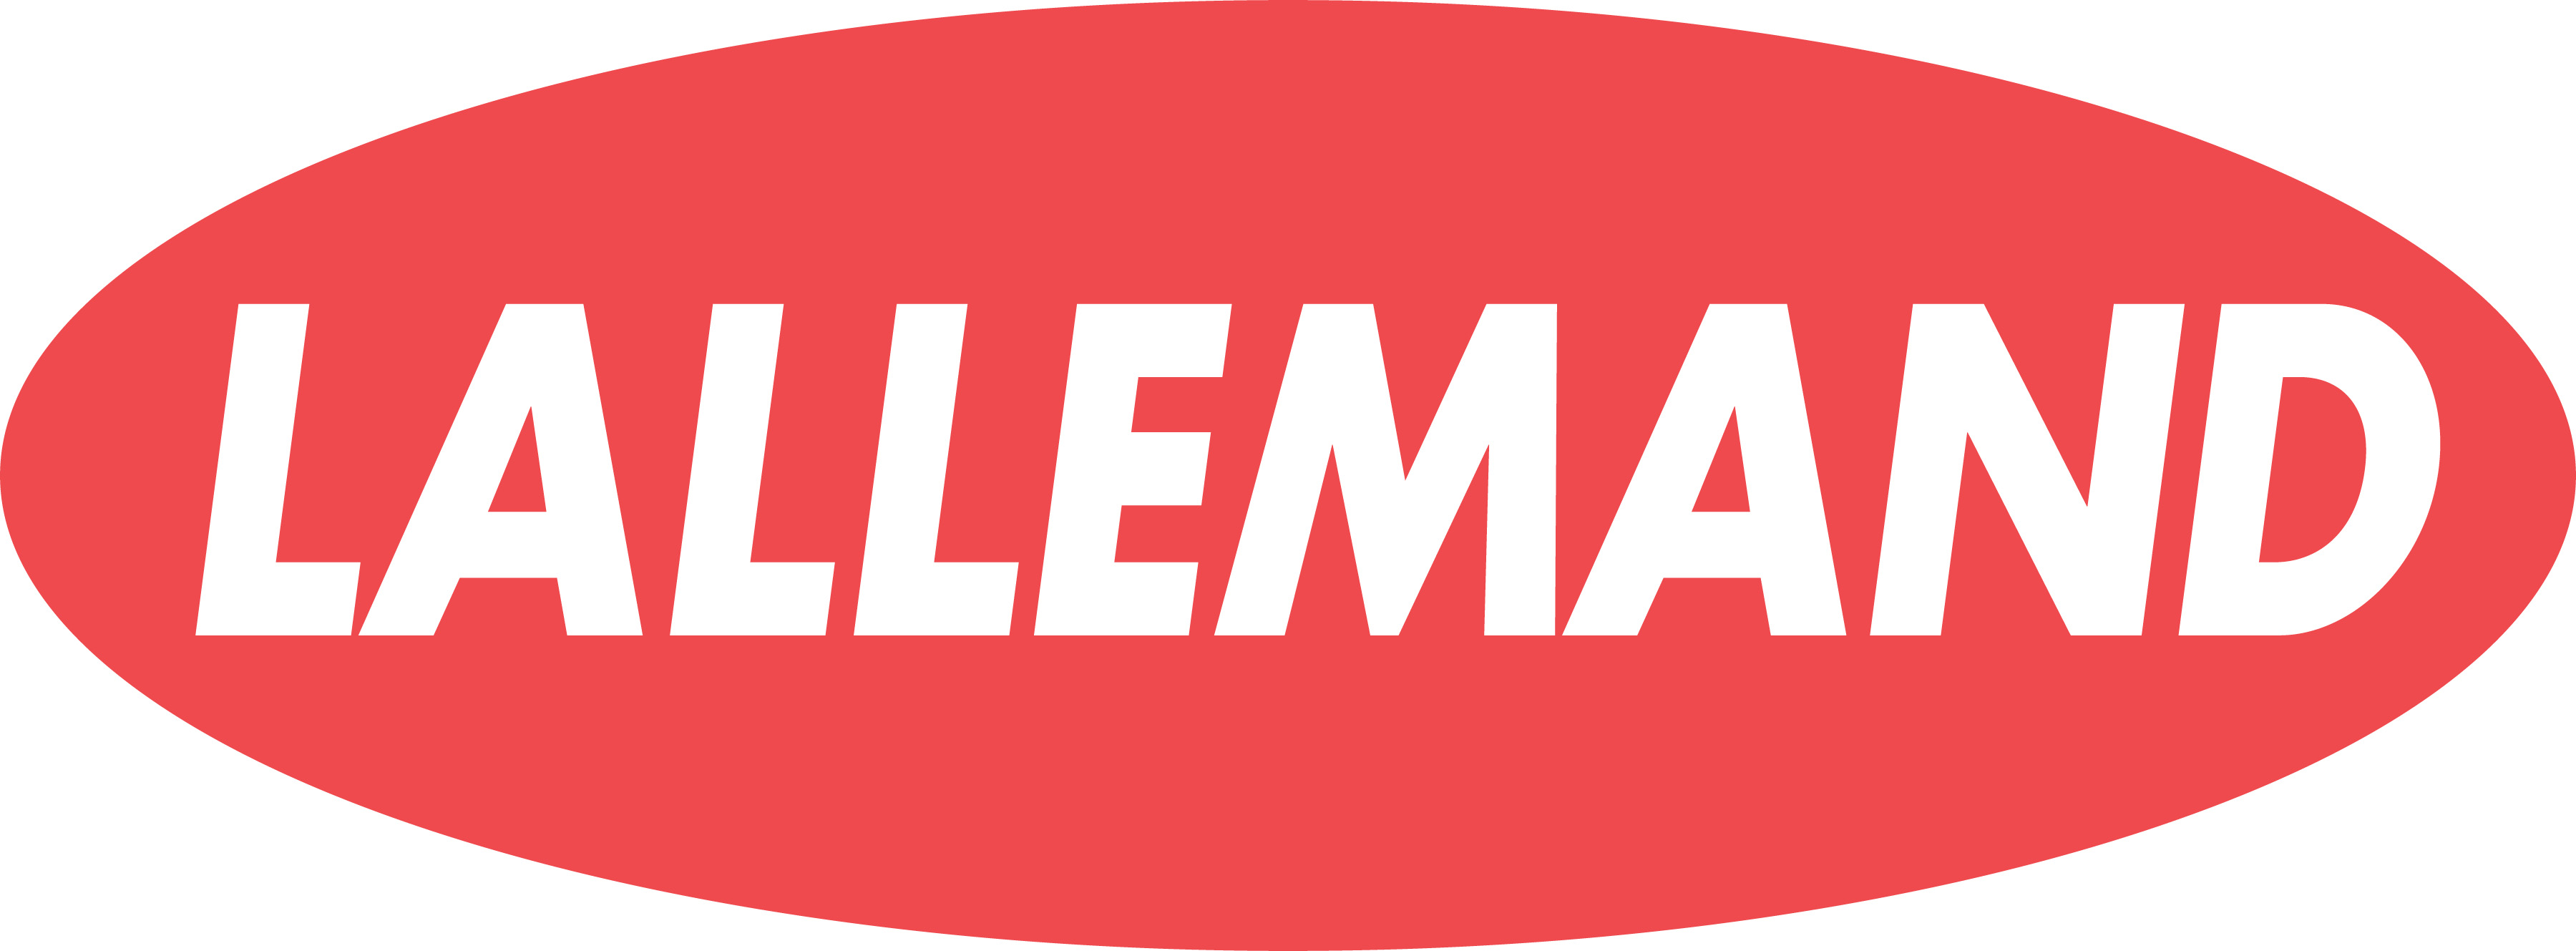 lallemand logo updated